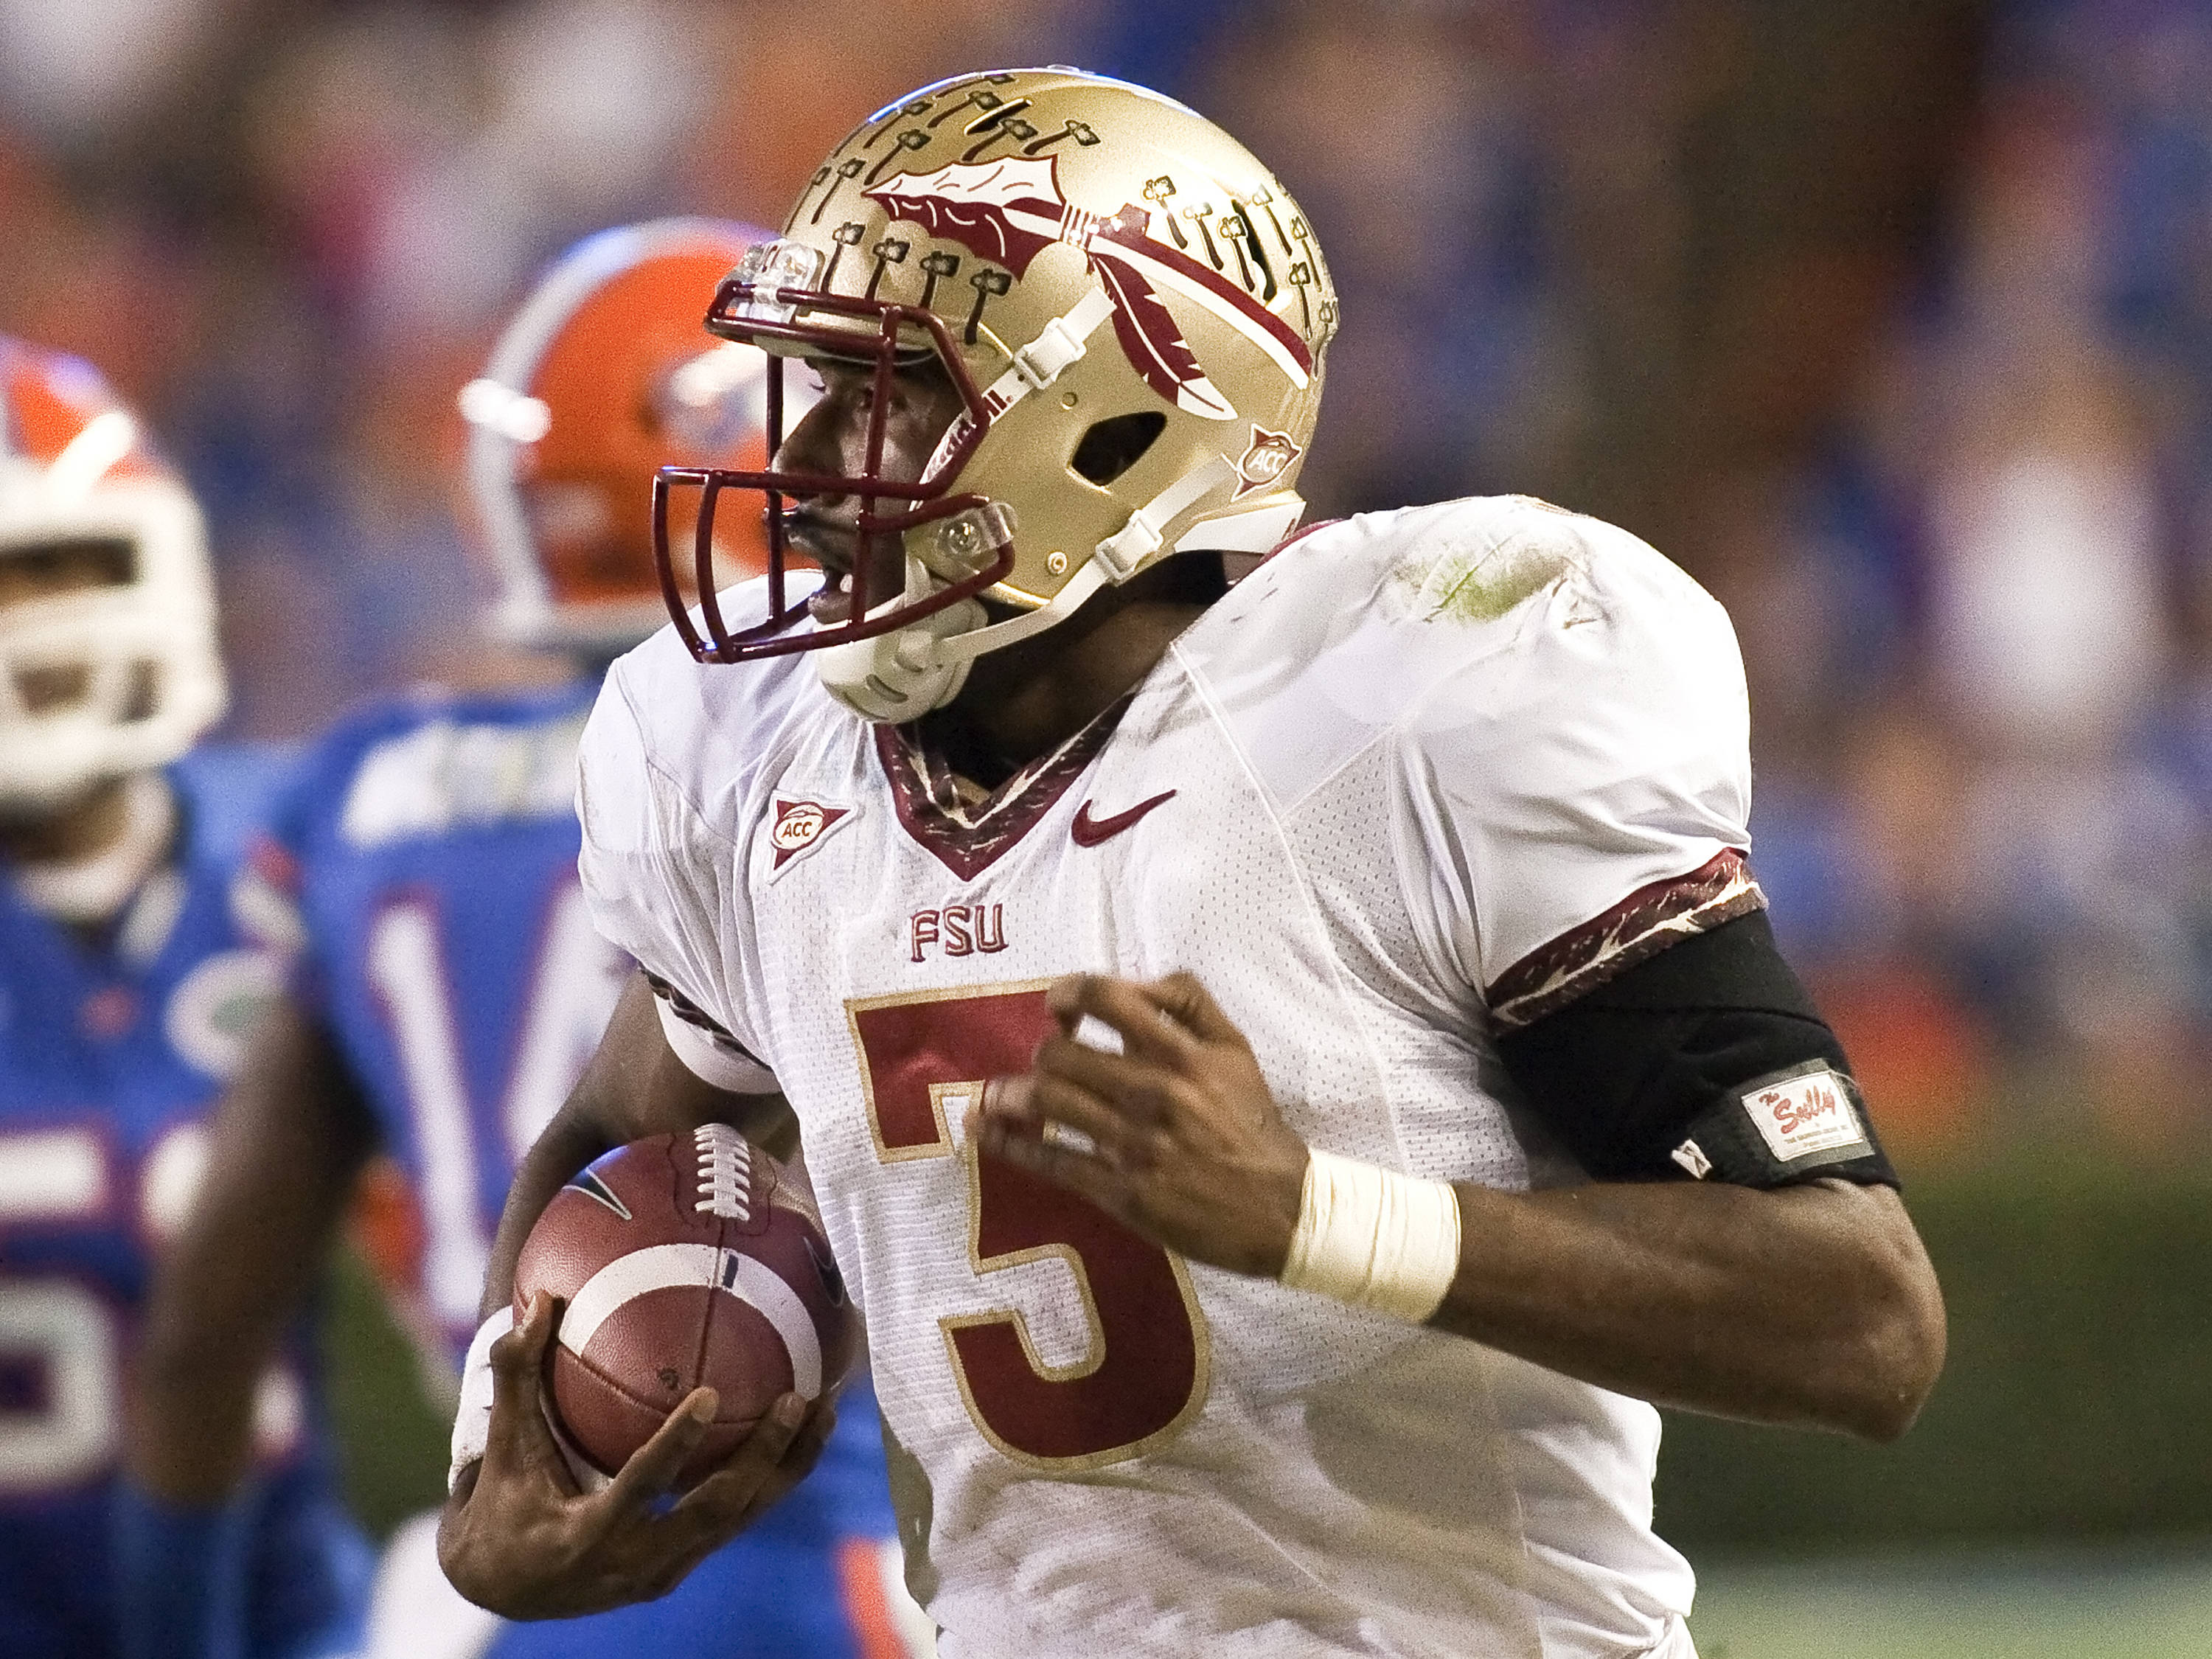 Quarterback EJ Manuel (3) with one of his runs, FSU vs Florida, 11/26/2011